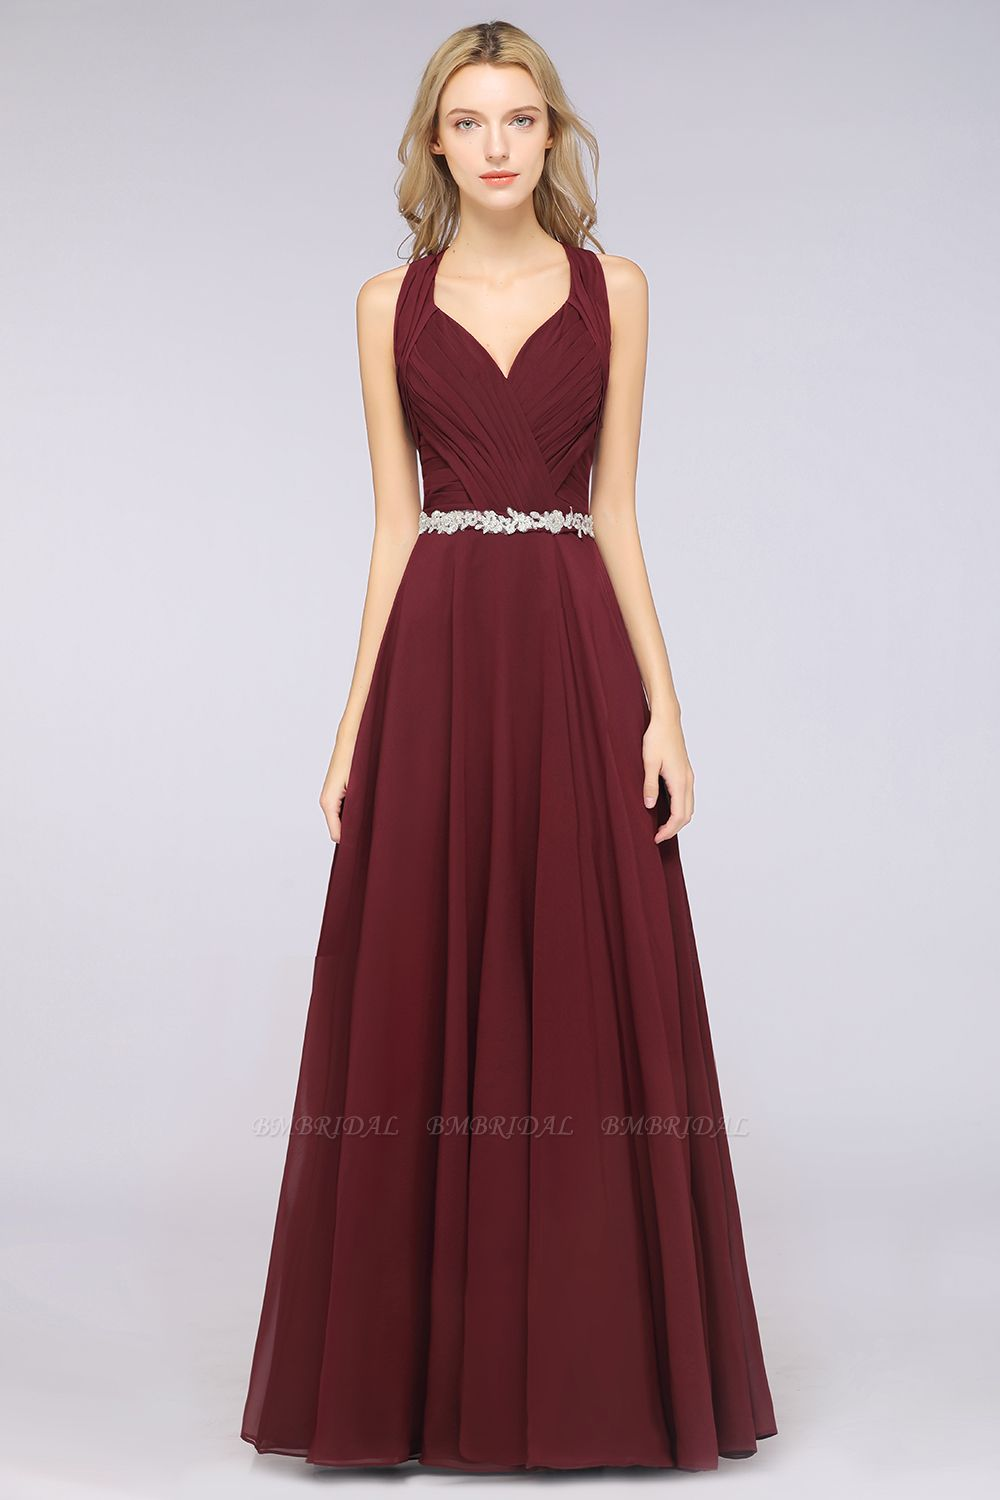 Elegant Chiffon Halter V-Neck Ruffle Bridesmaid Dress with Appliques Sashes